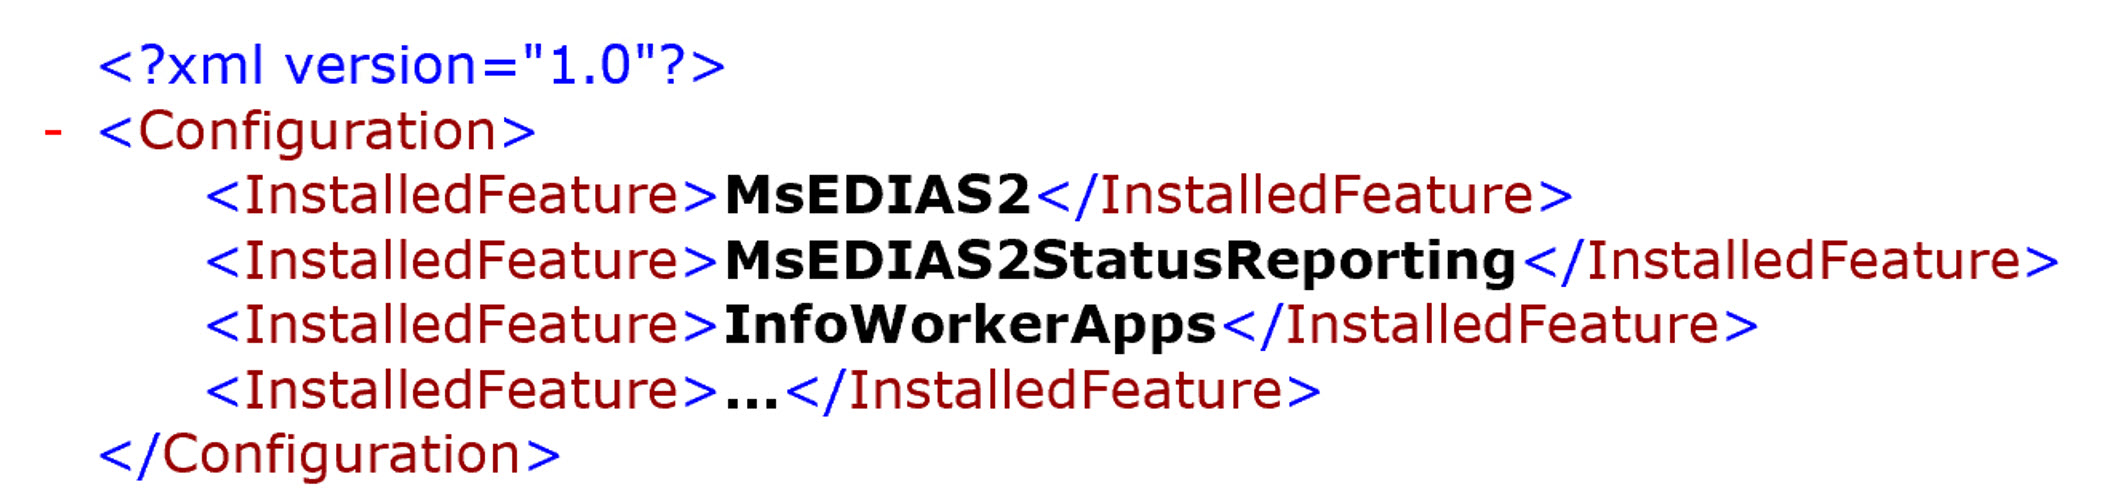 FeatureXml